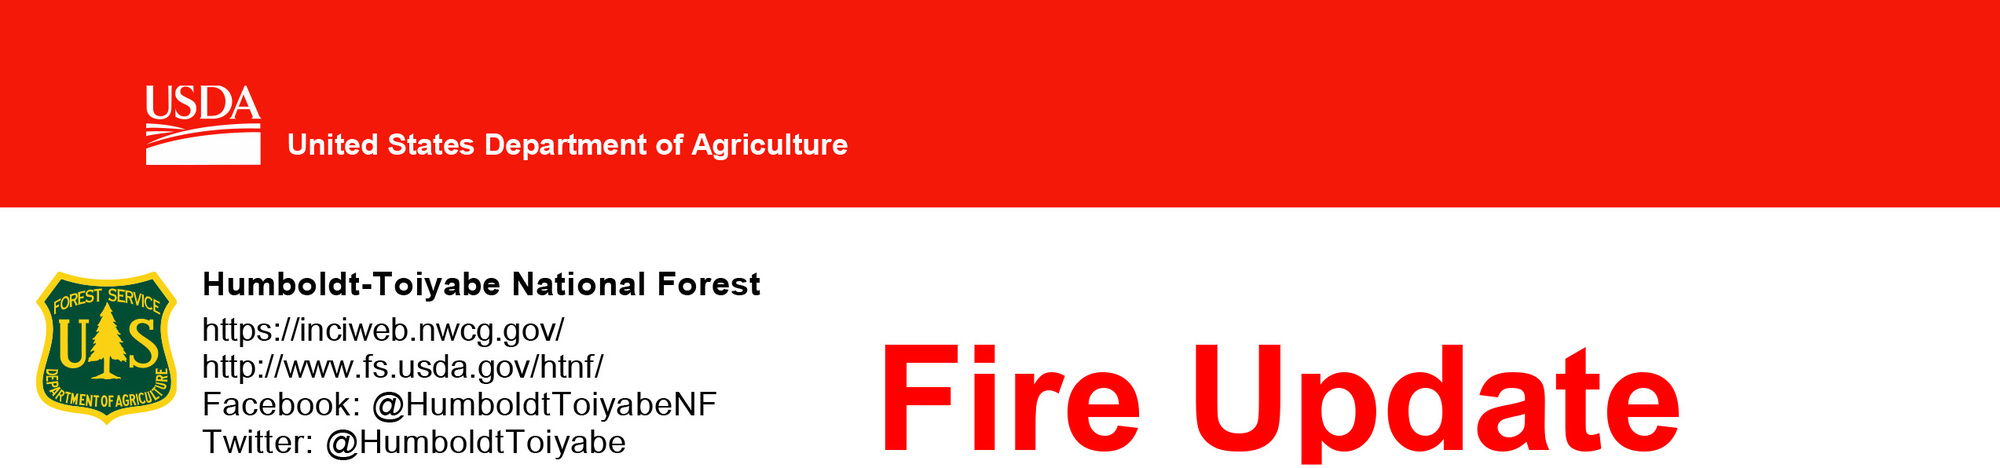 HT Fire News Release Header